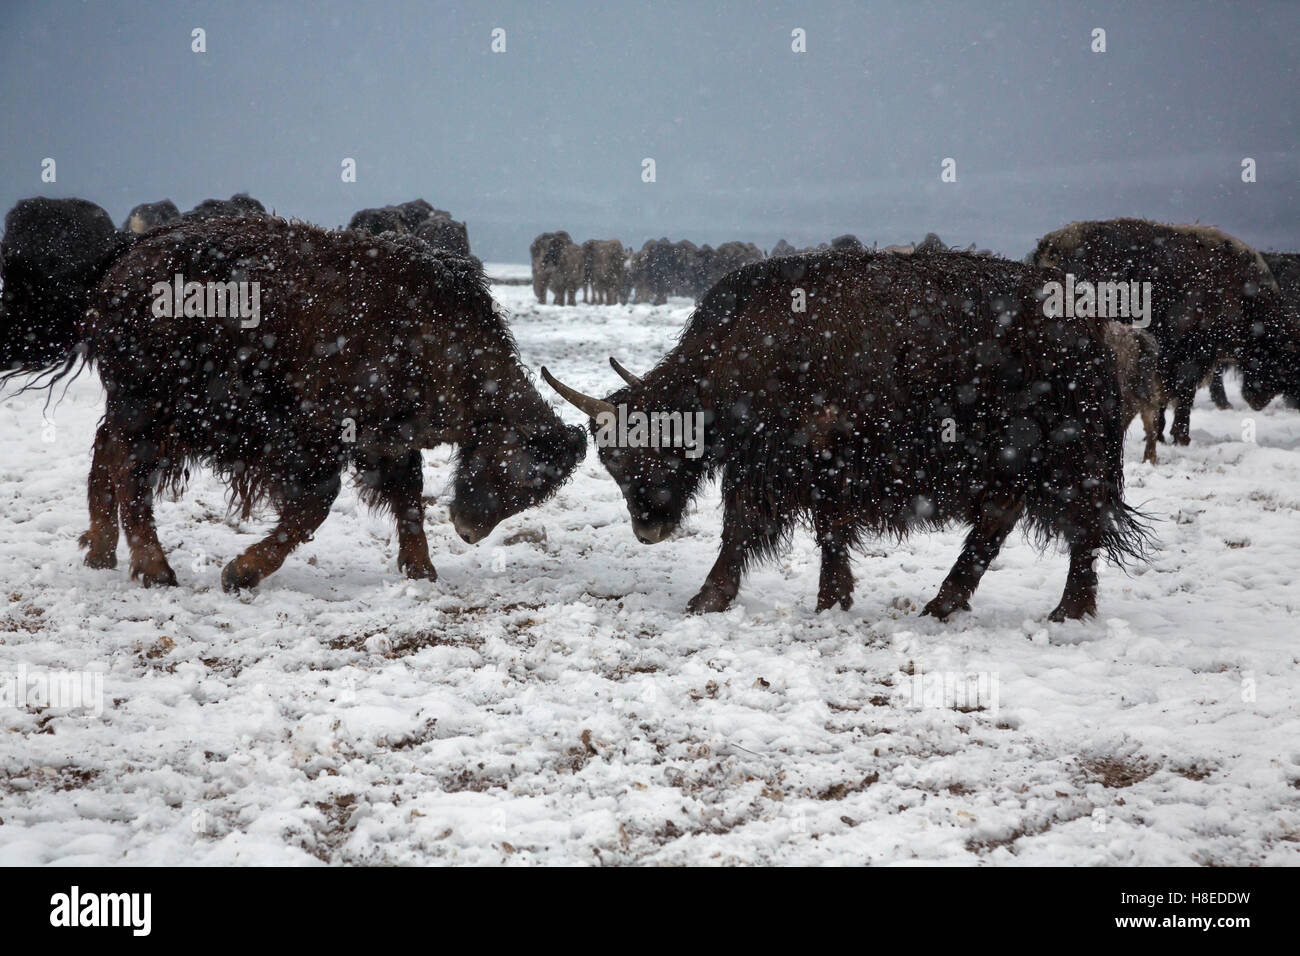 Yaks in the snow  in Bulunkul village, GBAO province, Tajikistan - Stock Image